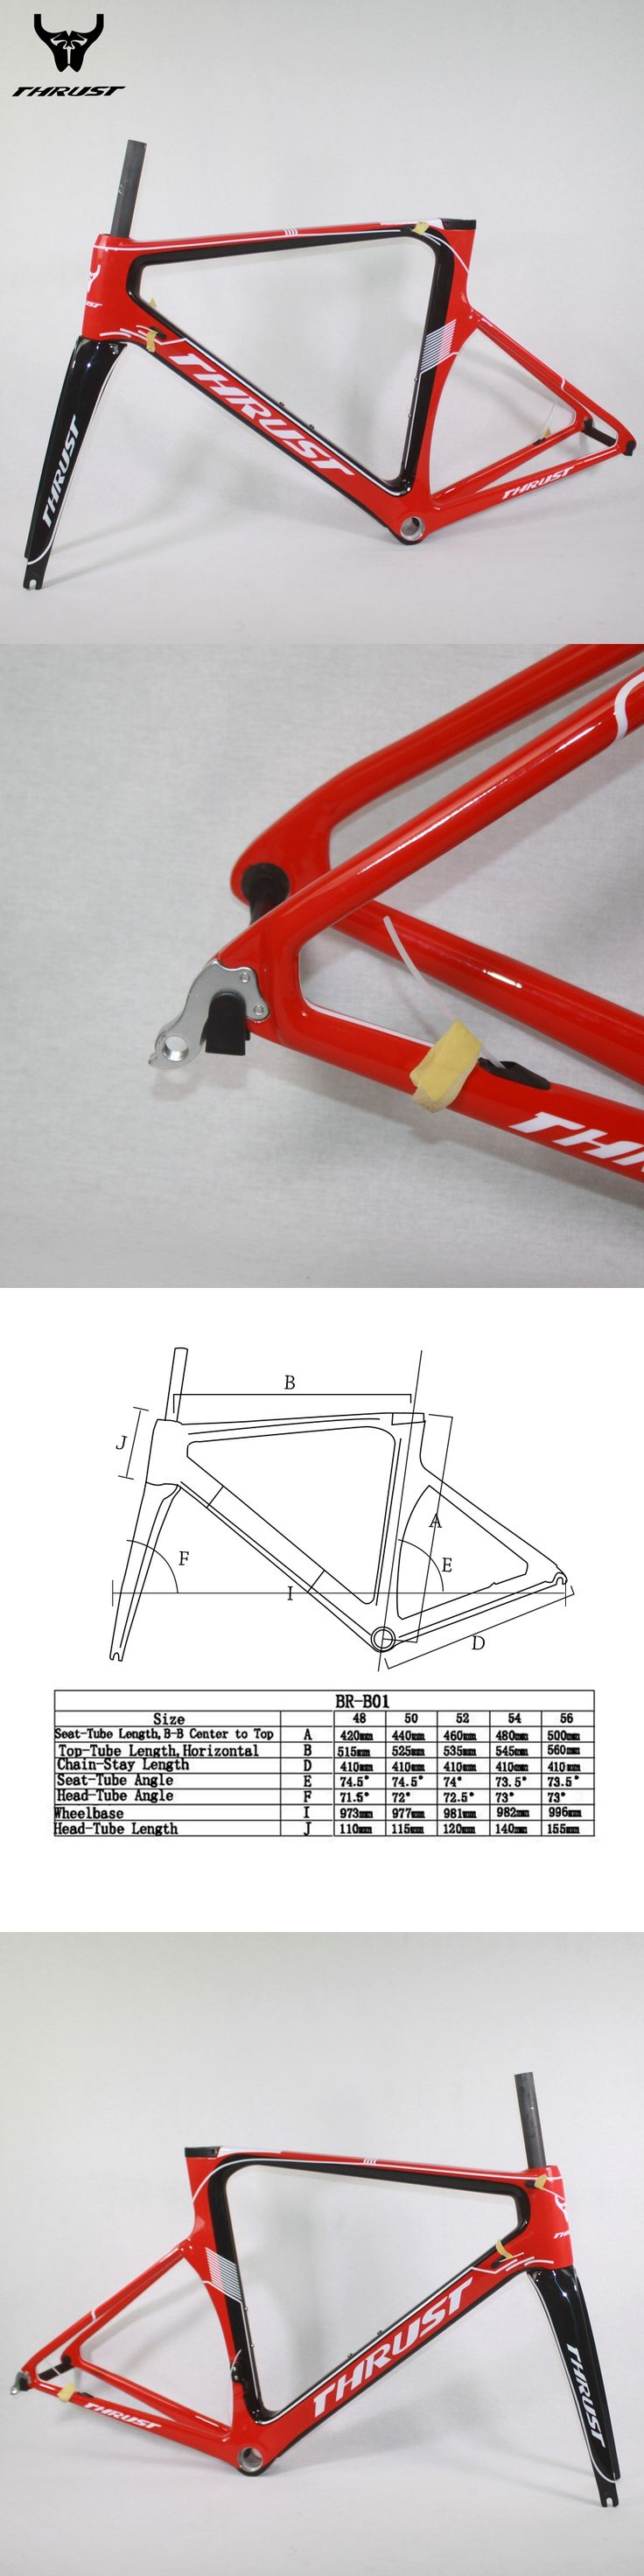 THRUST Carbon Road Frame 49 52 54 56 58cm 2017 China Red Orange Yellow Black White Carbon Frame Road Bike Parts For Bicycle